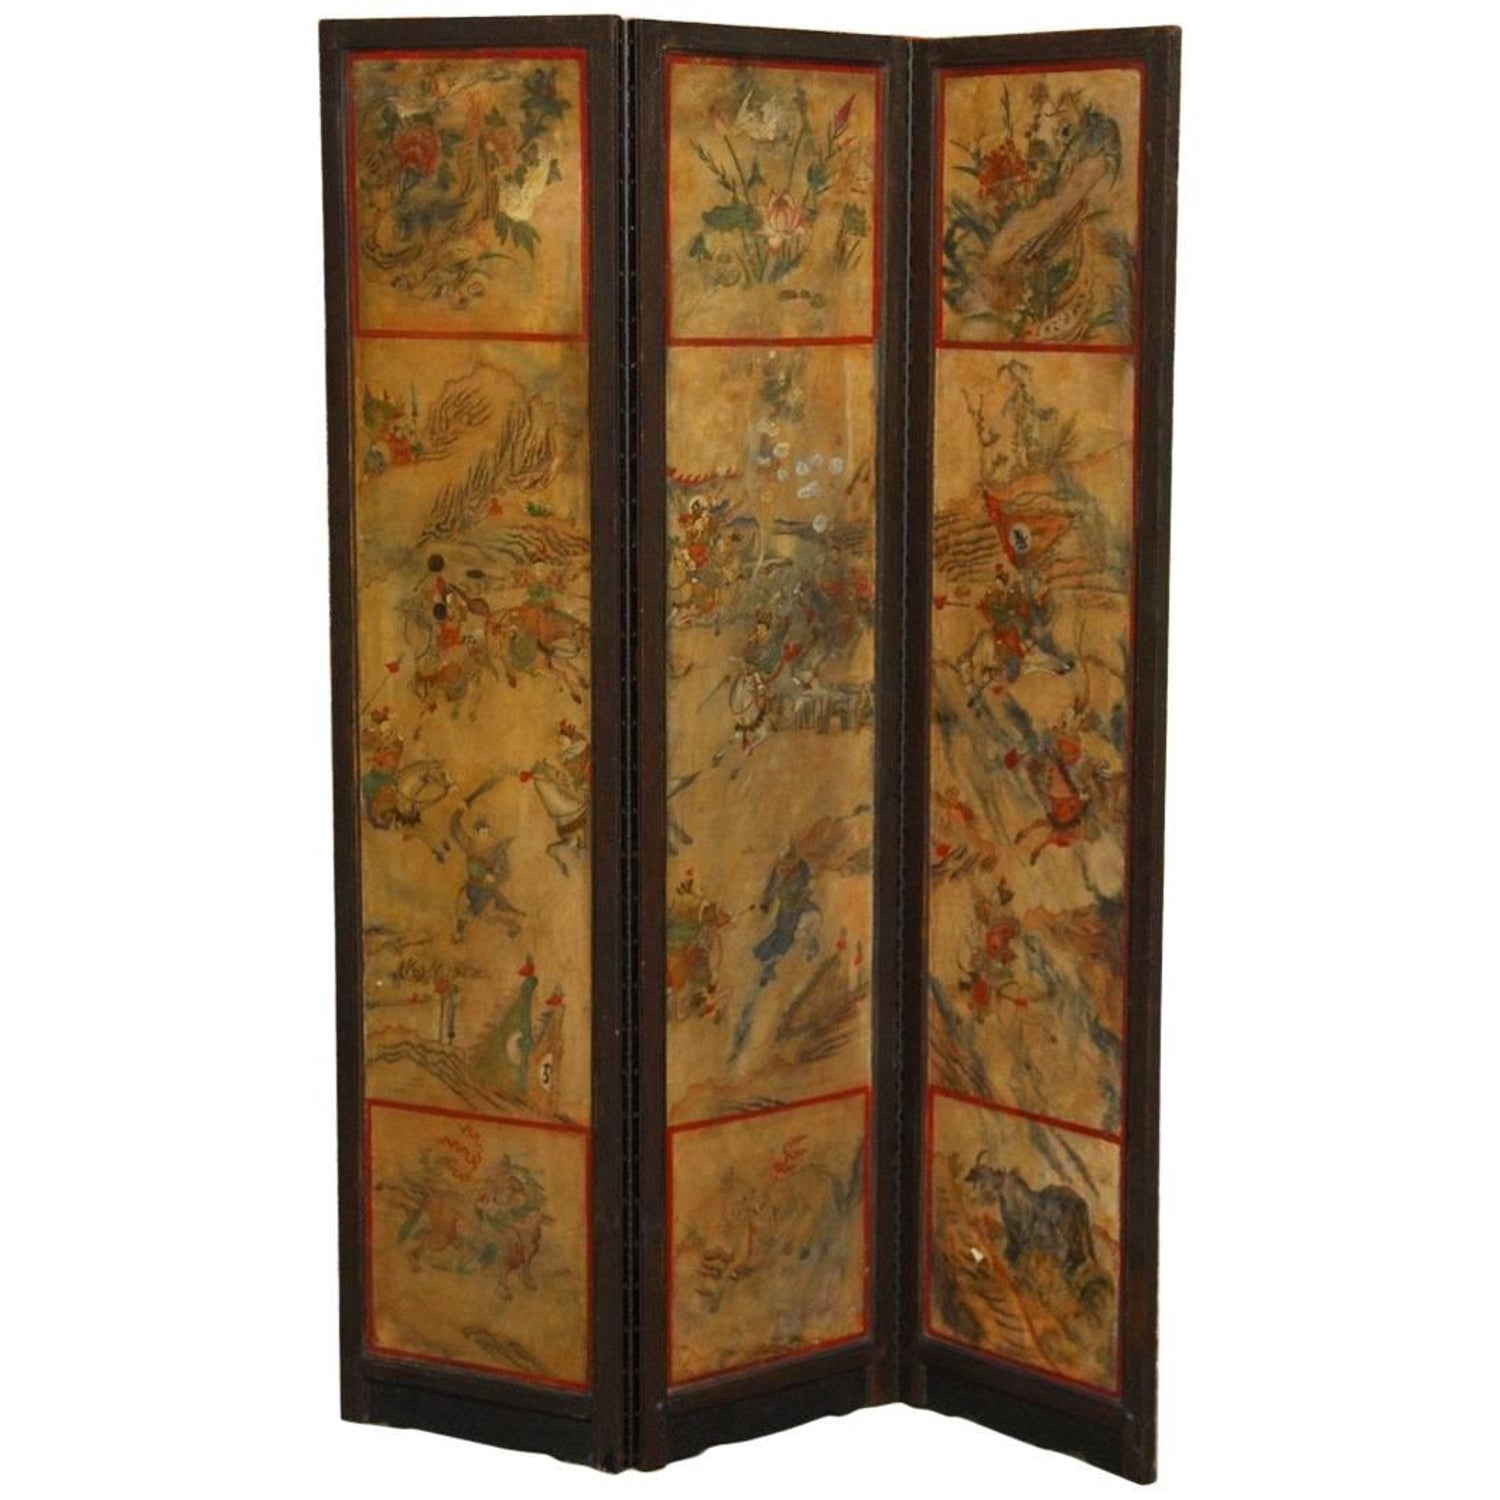 Antique japanese screens for sale - Chinese Qing Dynasty Three Panel Scroll Lacquered Screen